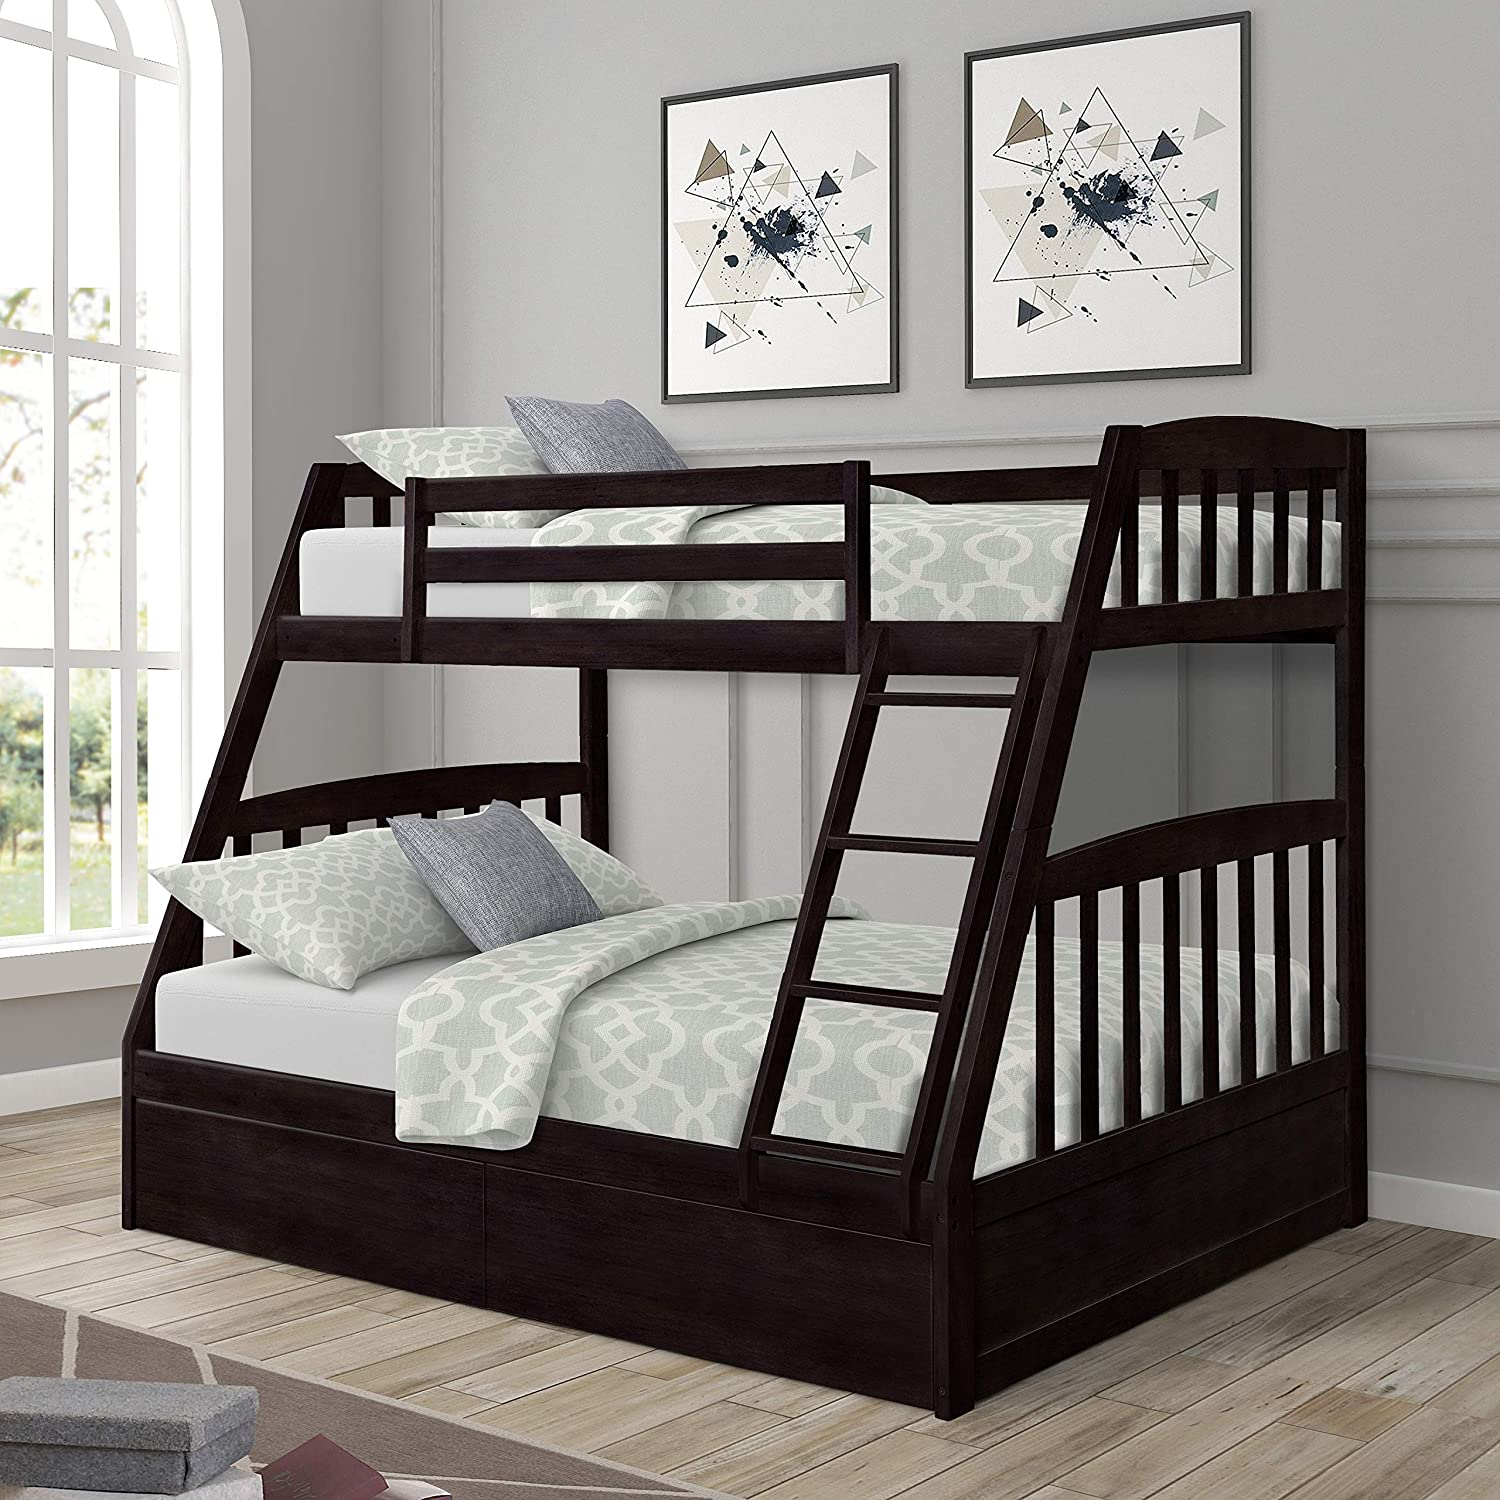 Twin Over Full Bunk Bed Solid Wood Bunk Bed with Two Storage Drawers,Safety Rail and Stair Loft,Espresso